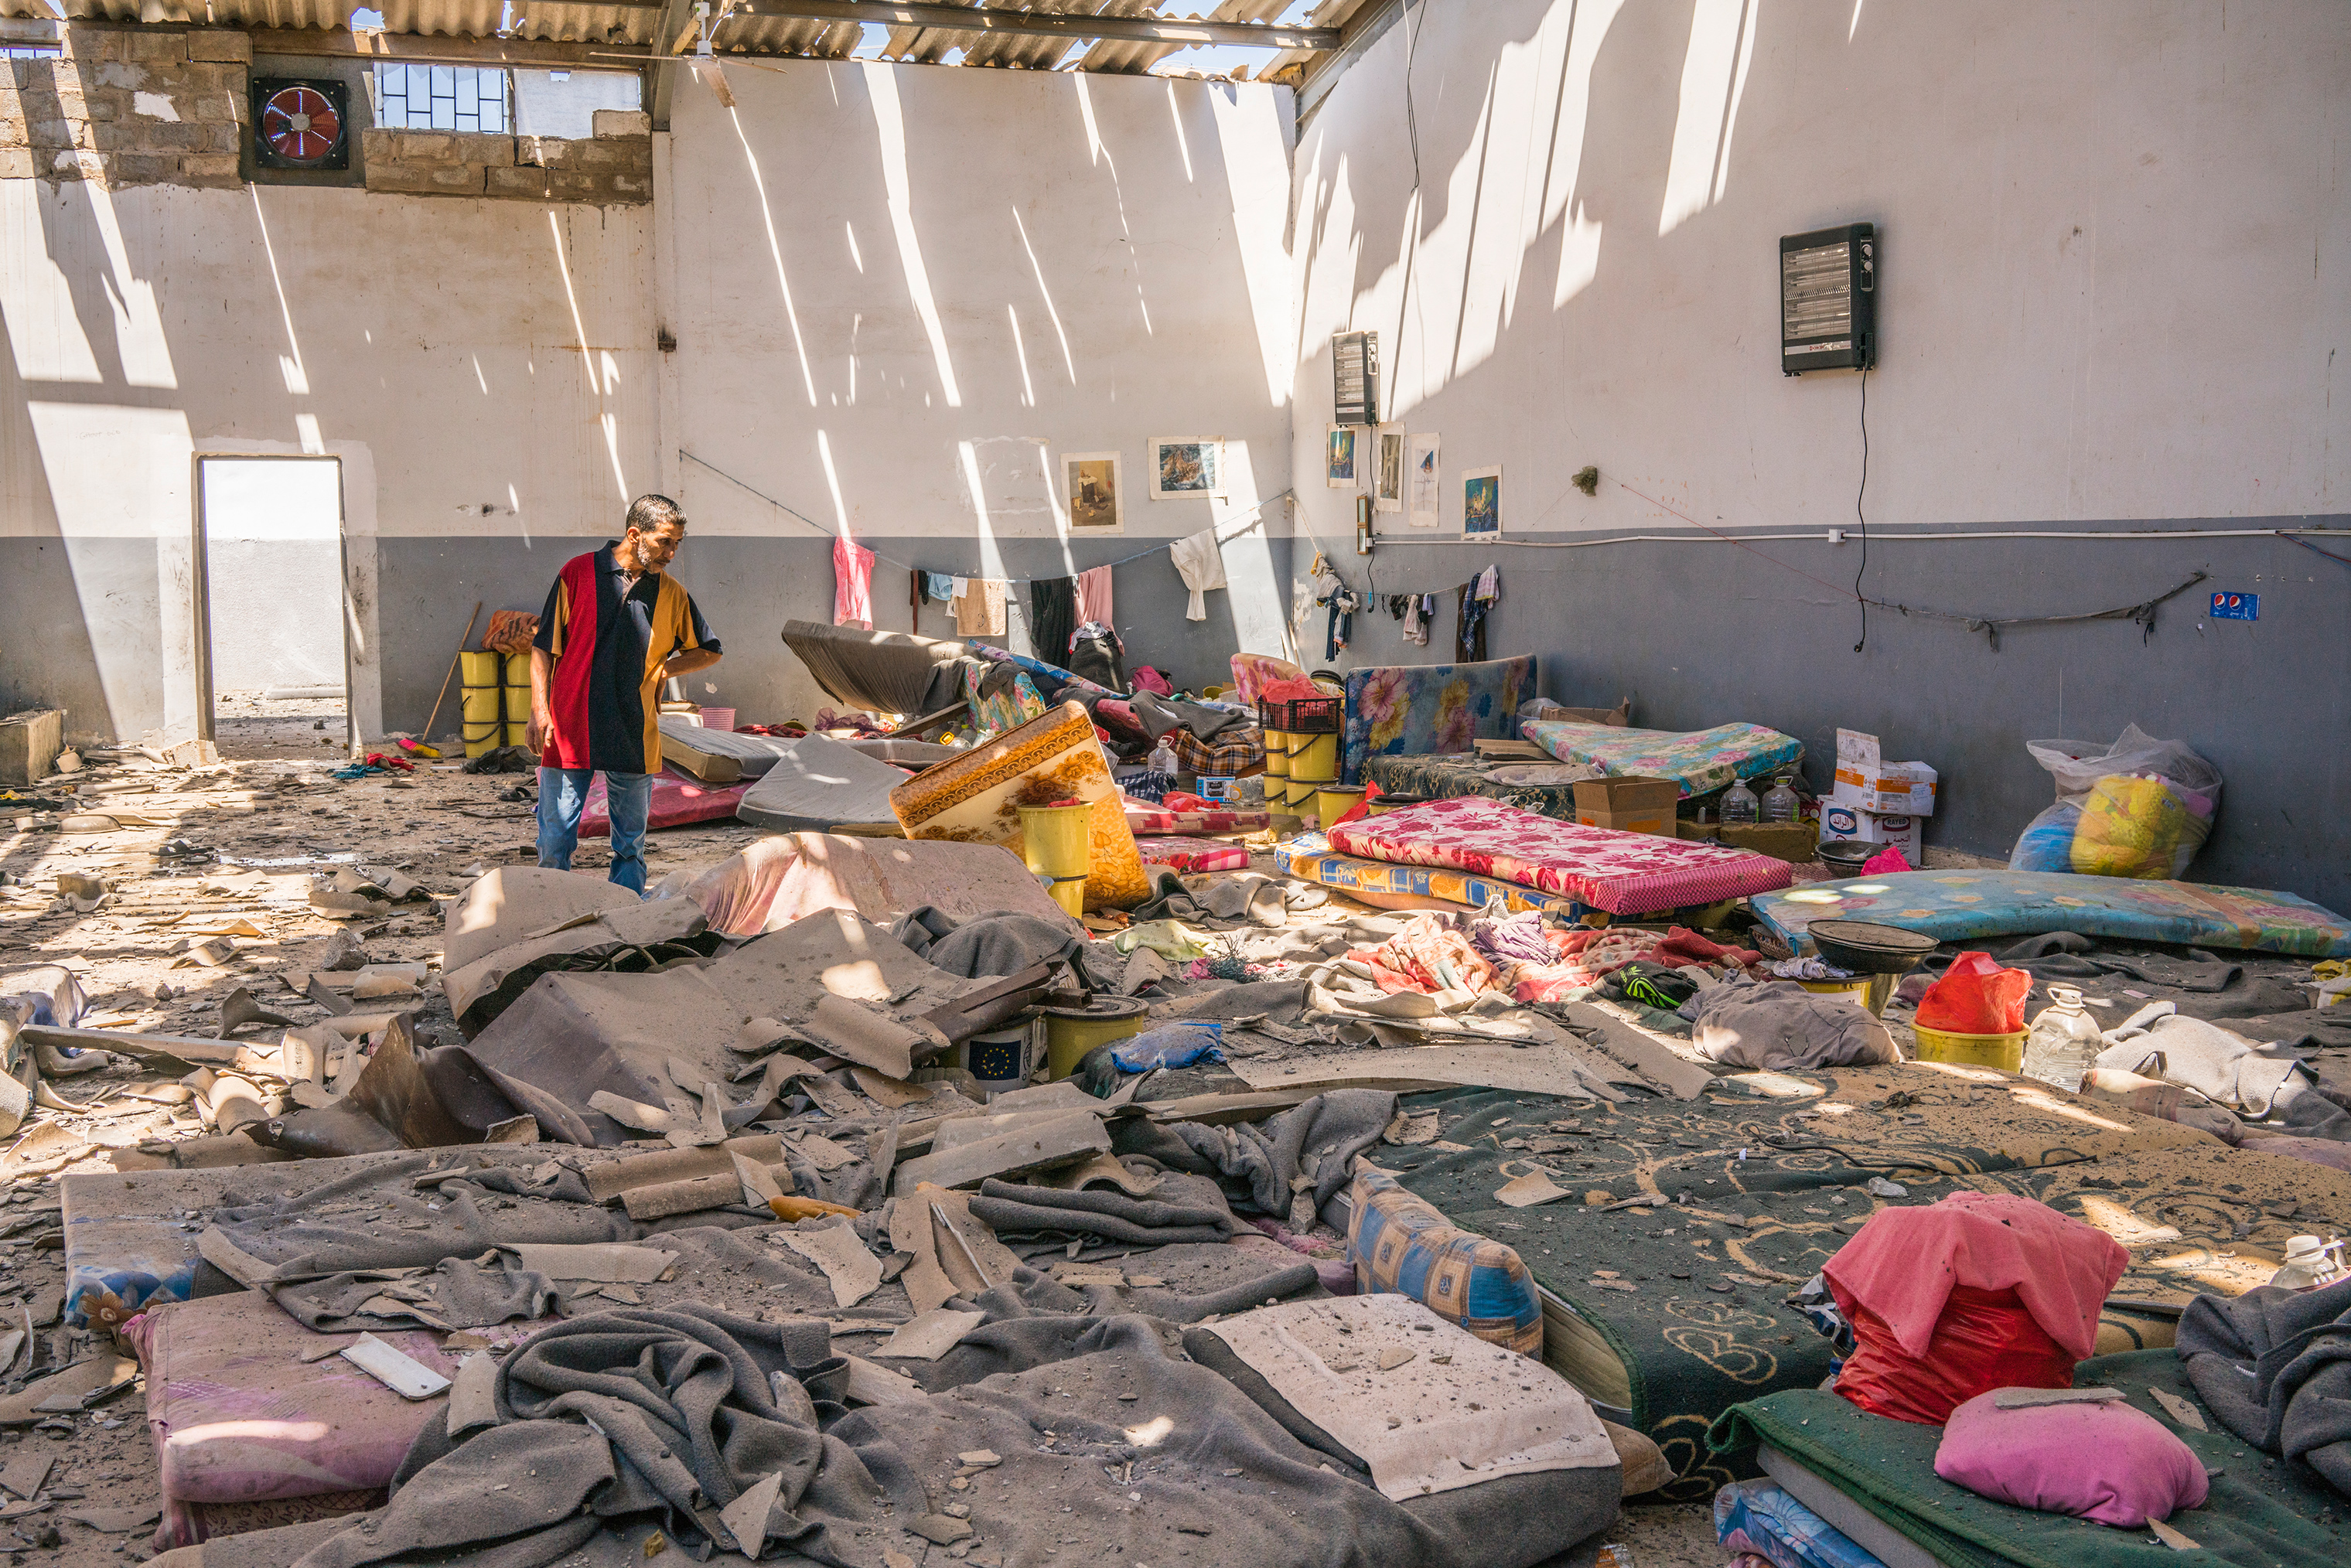 A man inspects damage to an area where migrants slept inside the Tajoura detention center near Tripoli, Libya, on July 3.